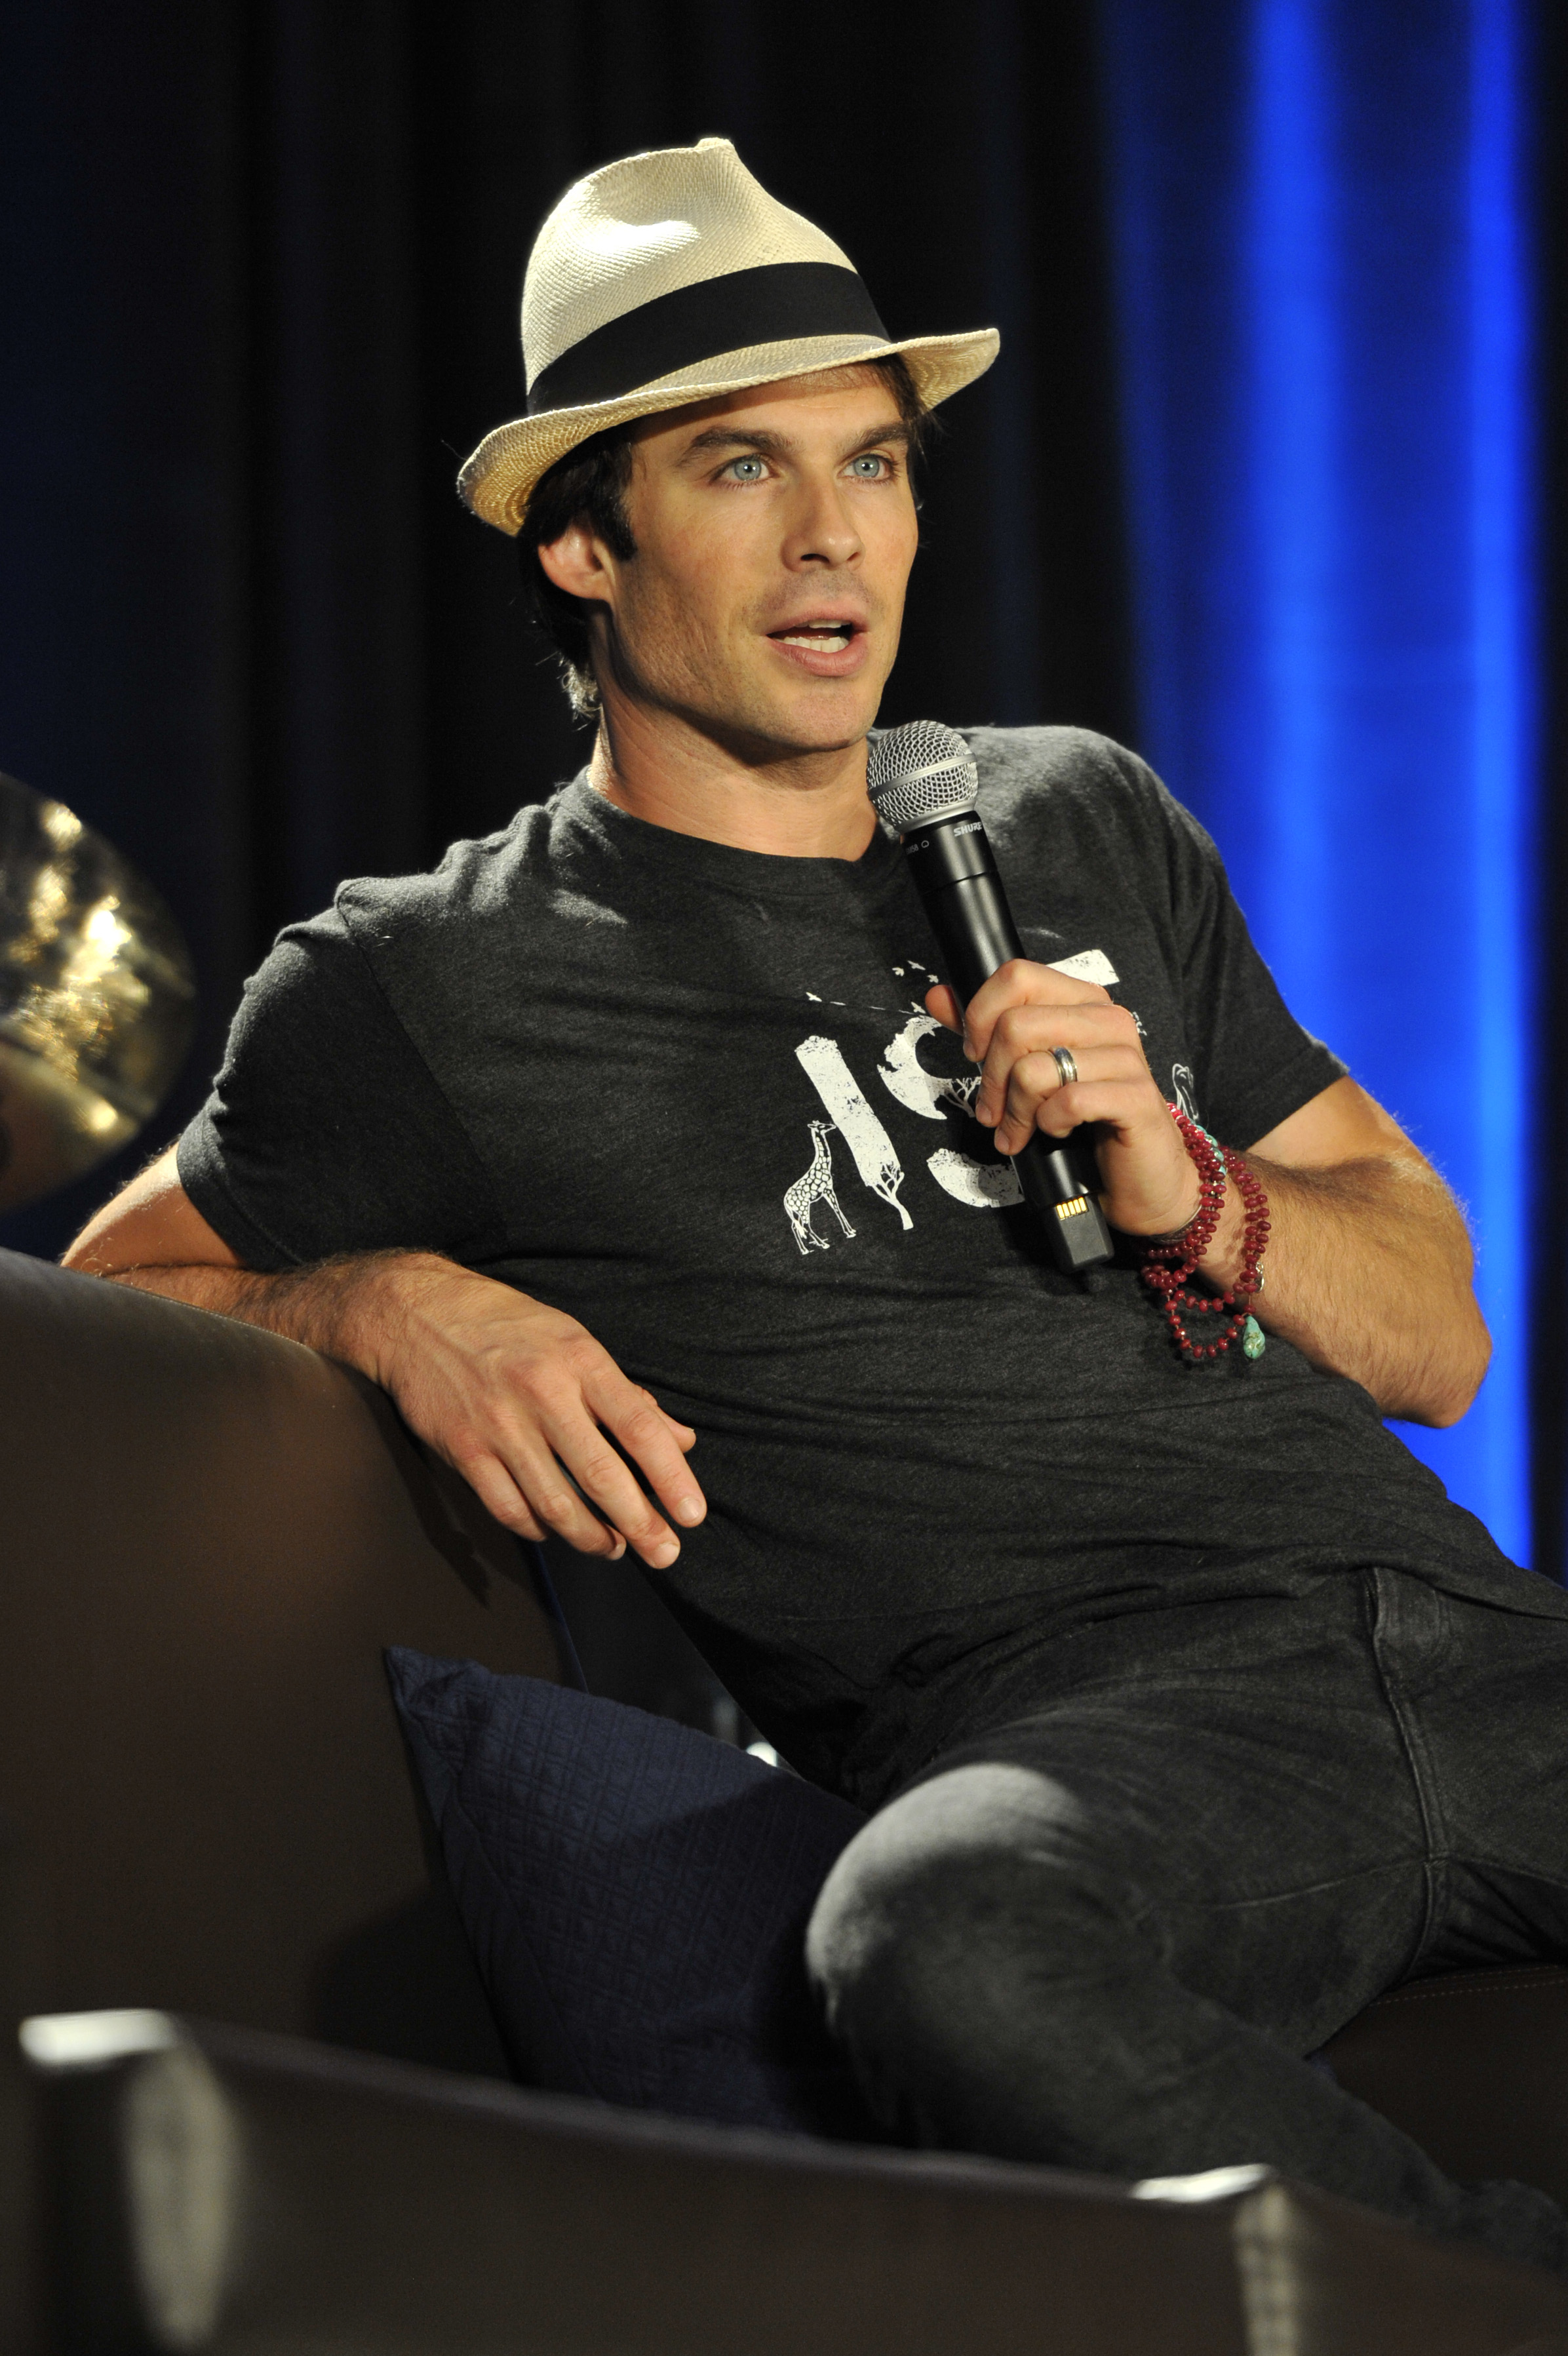 Wizard World Comic Con at the Donald E Stephens Convention Center in Rosemont - Day 3                                    Featuring: Ian Somerhalder                  Where: Rosemont, Illinois, United States                  When: 22 Aug 2015                  Credit: Ray Garbo/WENN.com